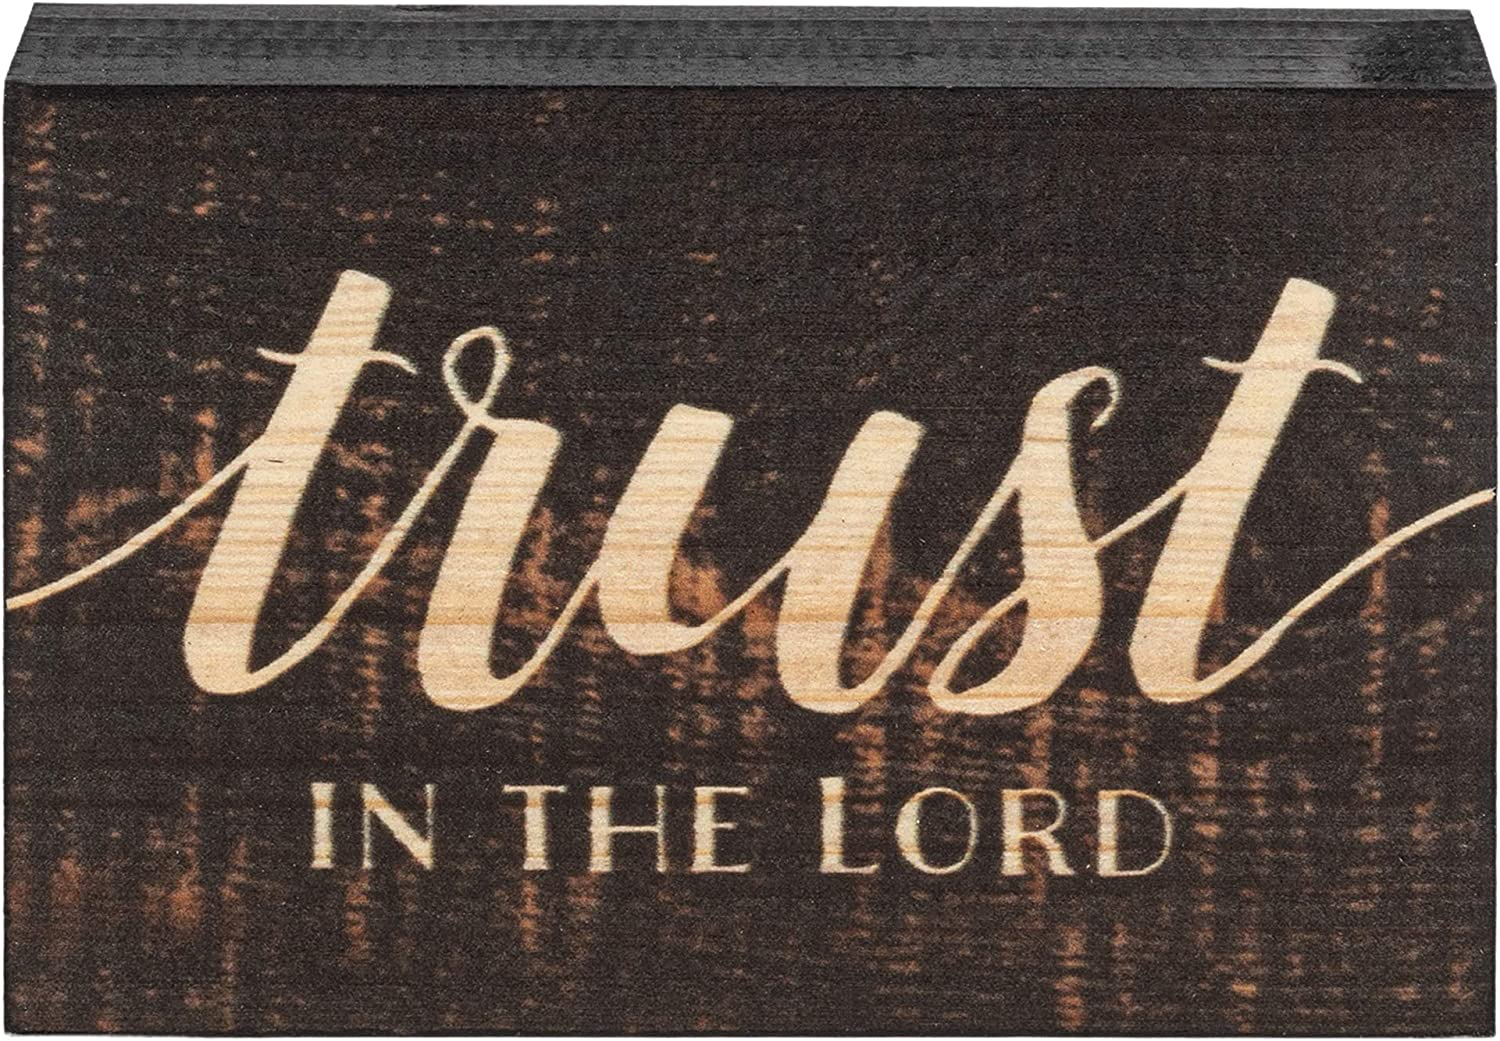 P. Graham Dunn Trust in The Lord Script Design Grey 5 x 3.5 Inch Solid Pine Wood Barnhouse Block Sign